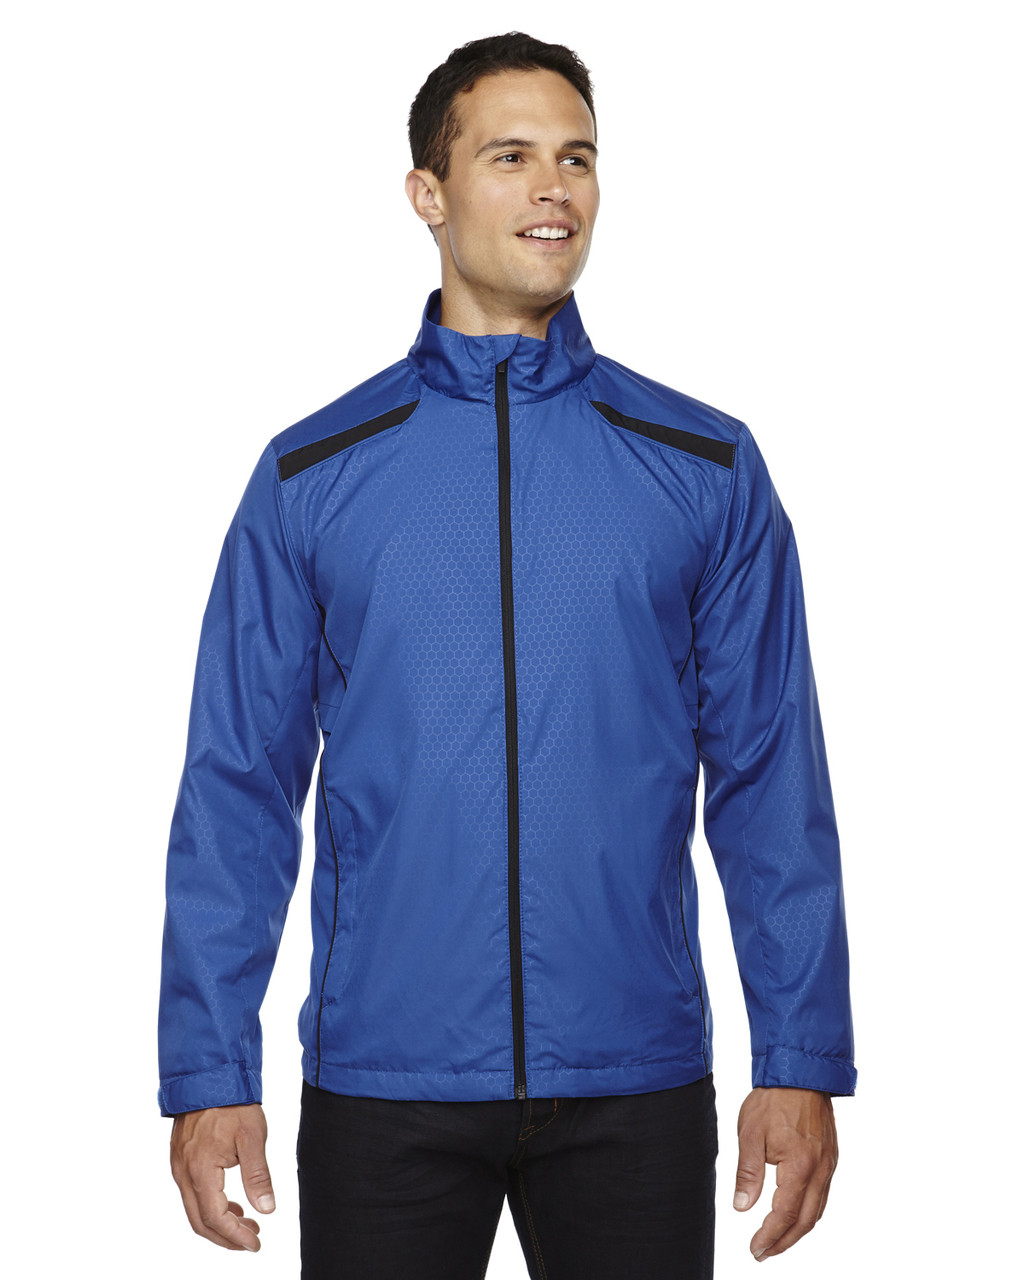 Nautical Blue 88188 North End Lightweight Recycled Polyester Jacket with Embossed Print | Blankclothing.ca